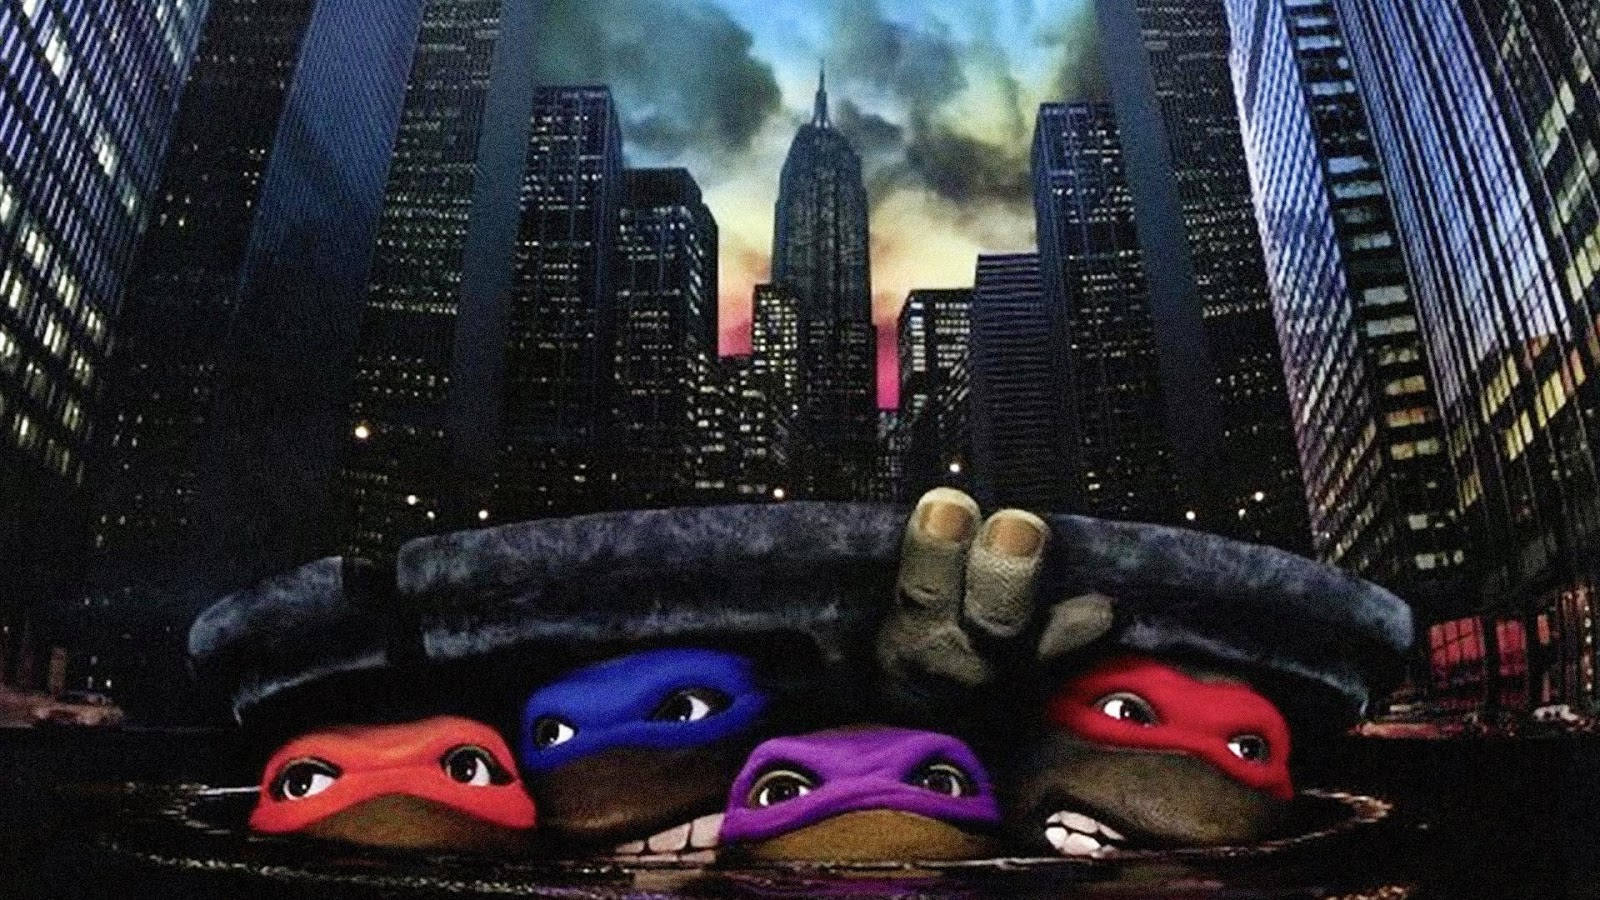 Blog From The Booth Teenage Mutant Ninja Turtles 1990 1371518 Hd Wallpaper Backgrounds Download